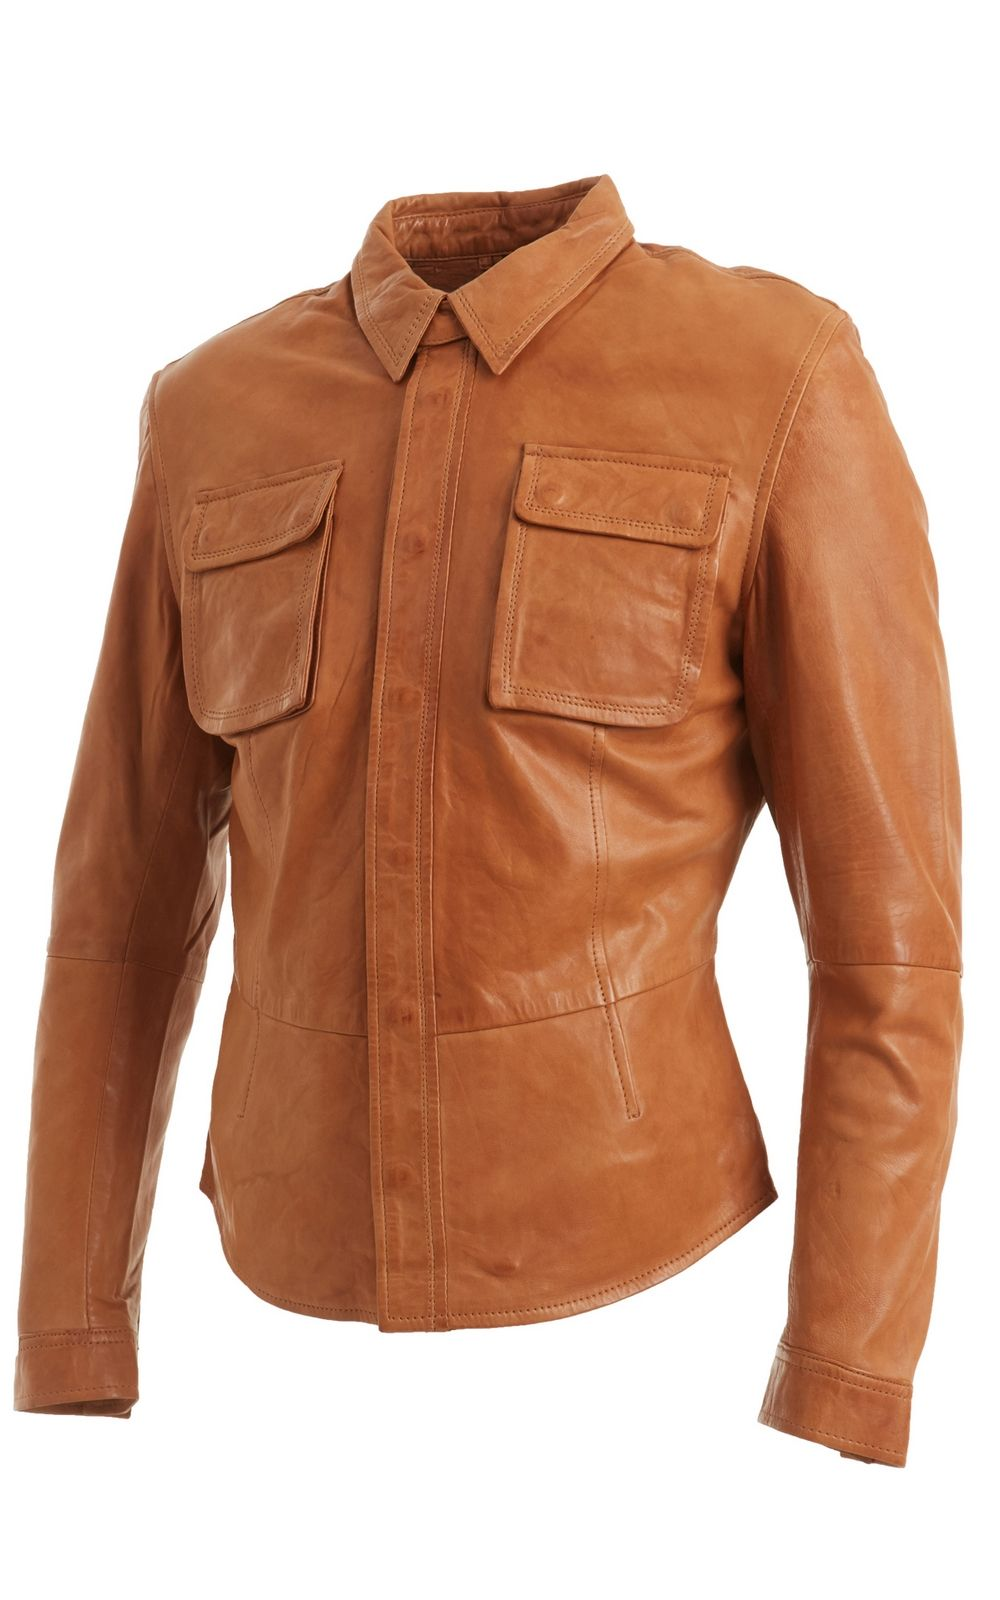 Mens tan leather shirt jacket faith leather finish him for Leather jacket and shirt